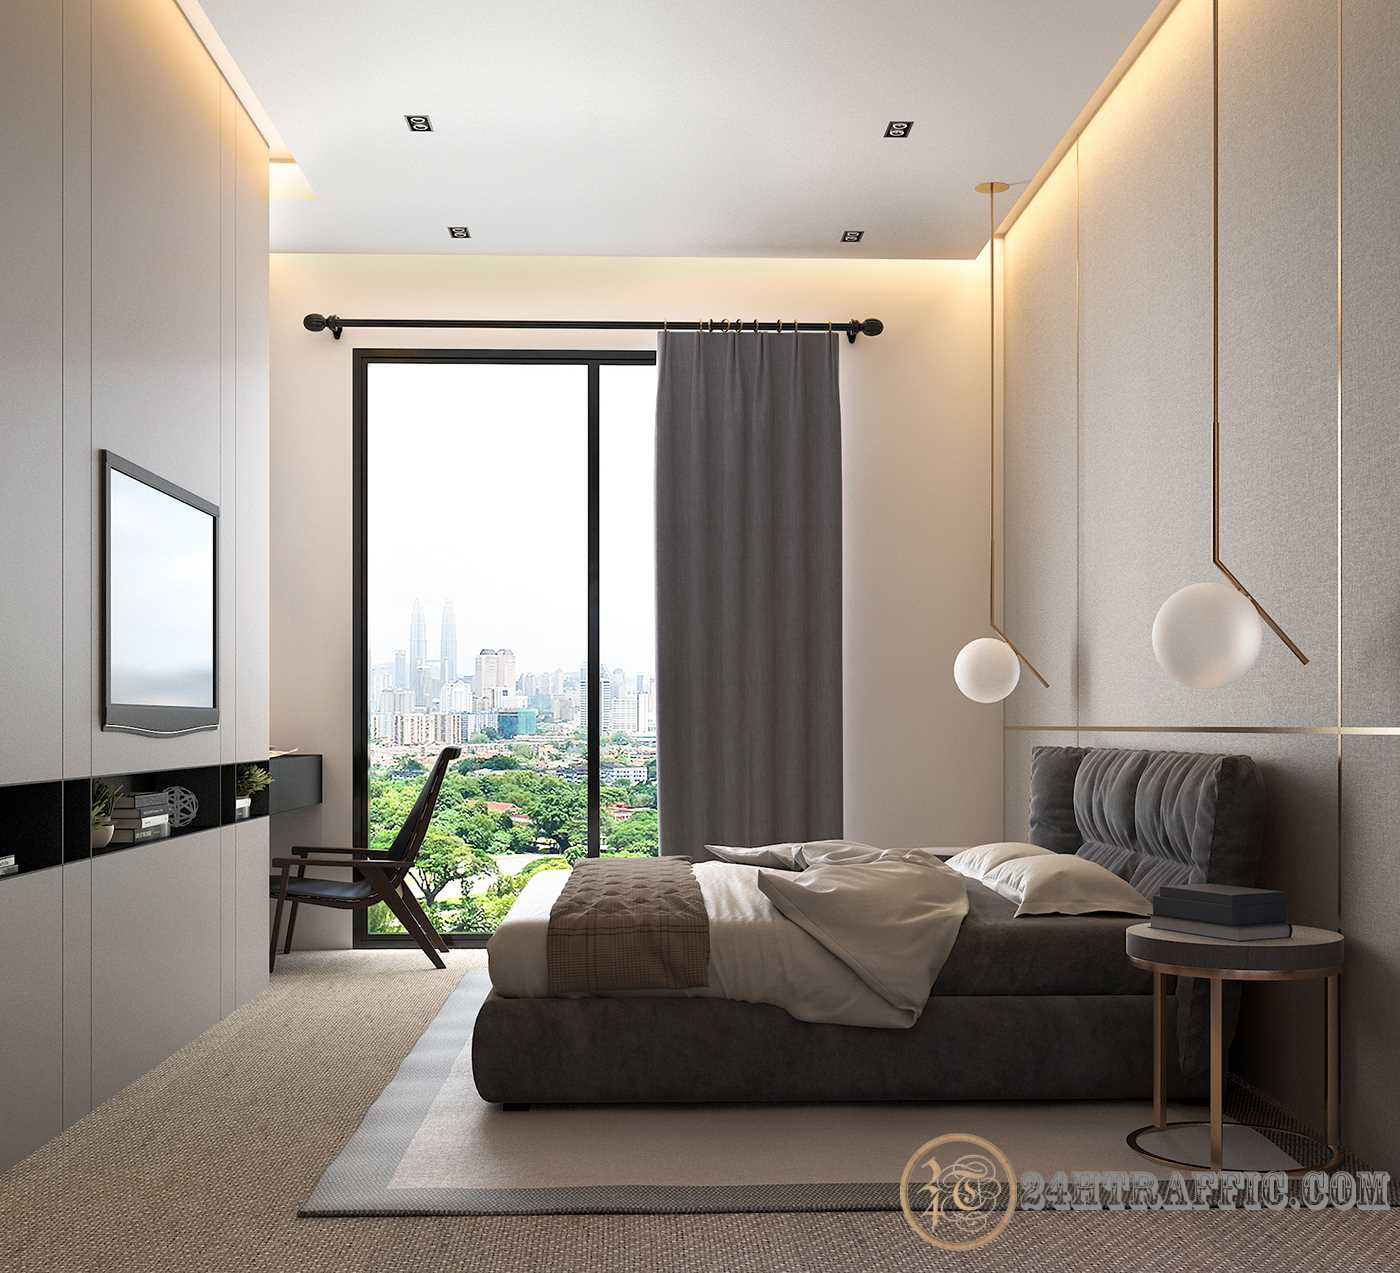 3dSkyHost: Interior Bedroom and WC Scenes File 3dsmax Free Dowload